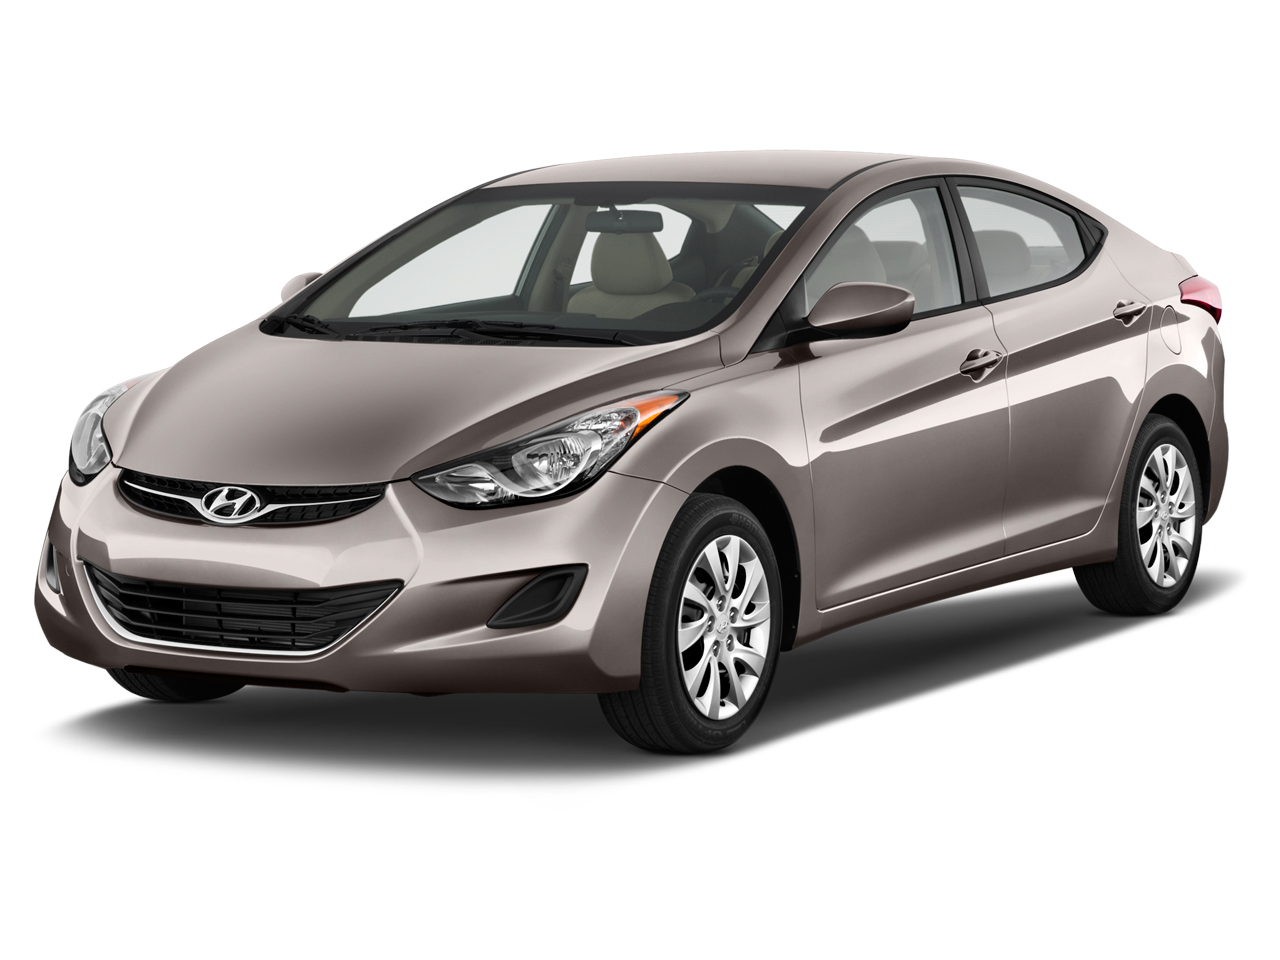 2013 hyundai elantra review ratings specs prices and. Black Bedroom Furniture Sets. Home Design Ideas